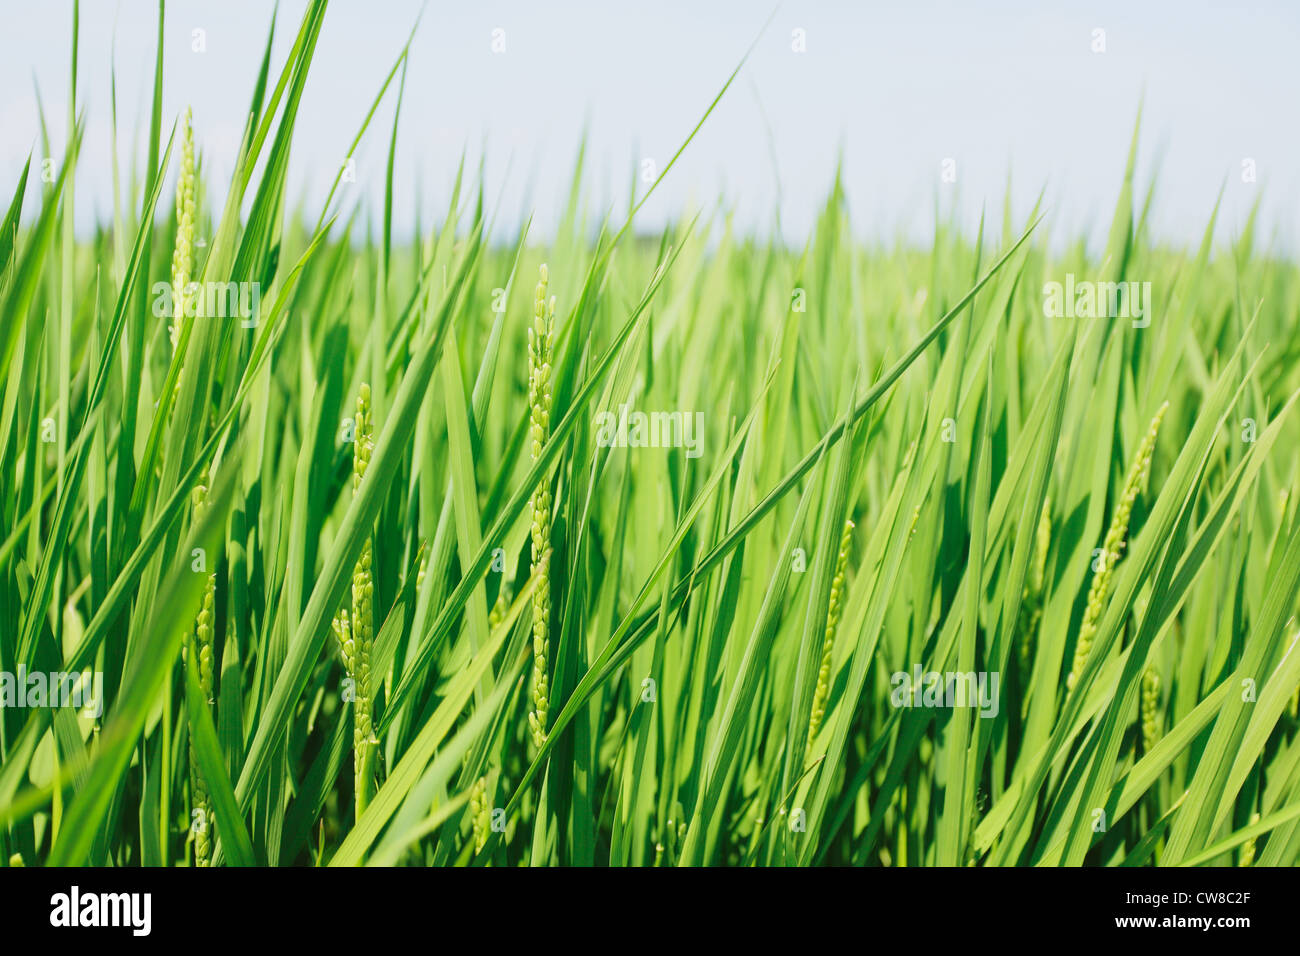 Crops In Field - Stock Image